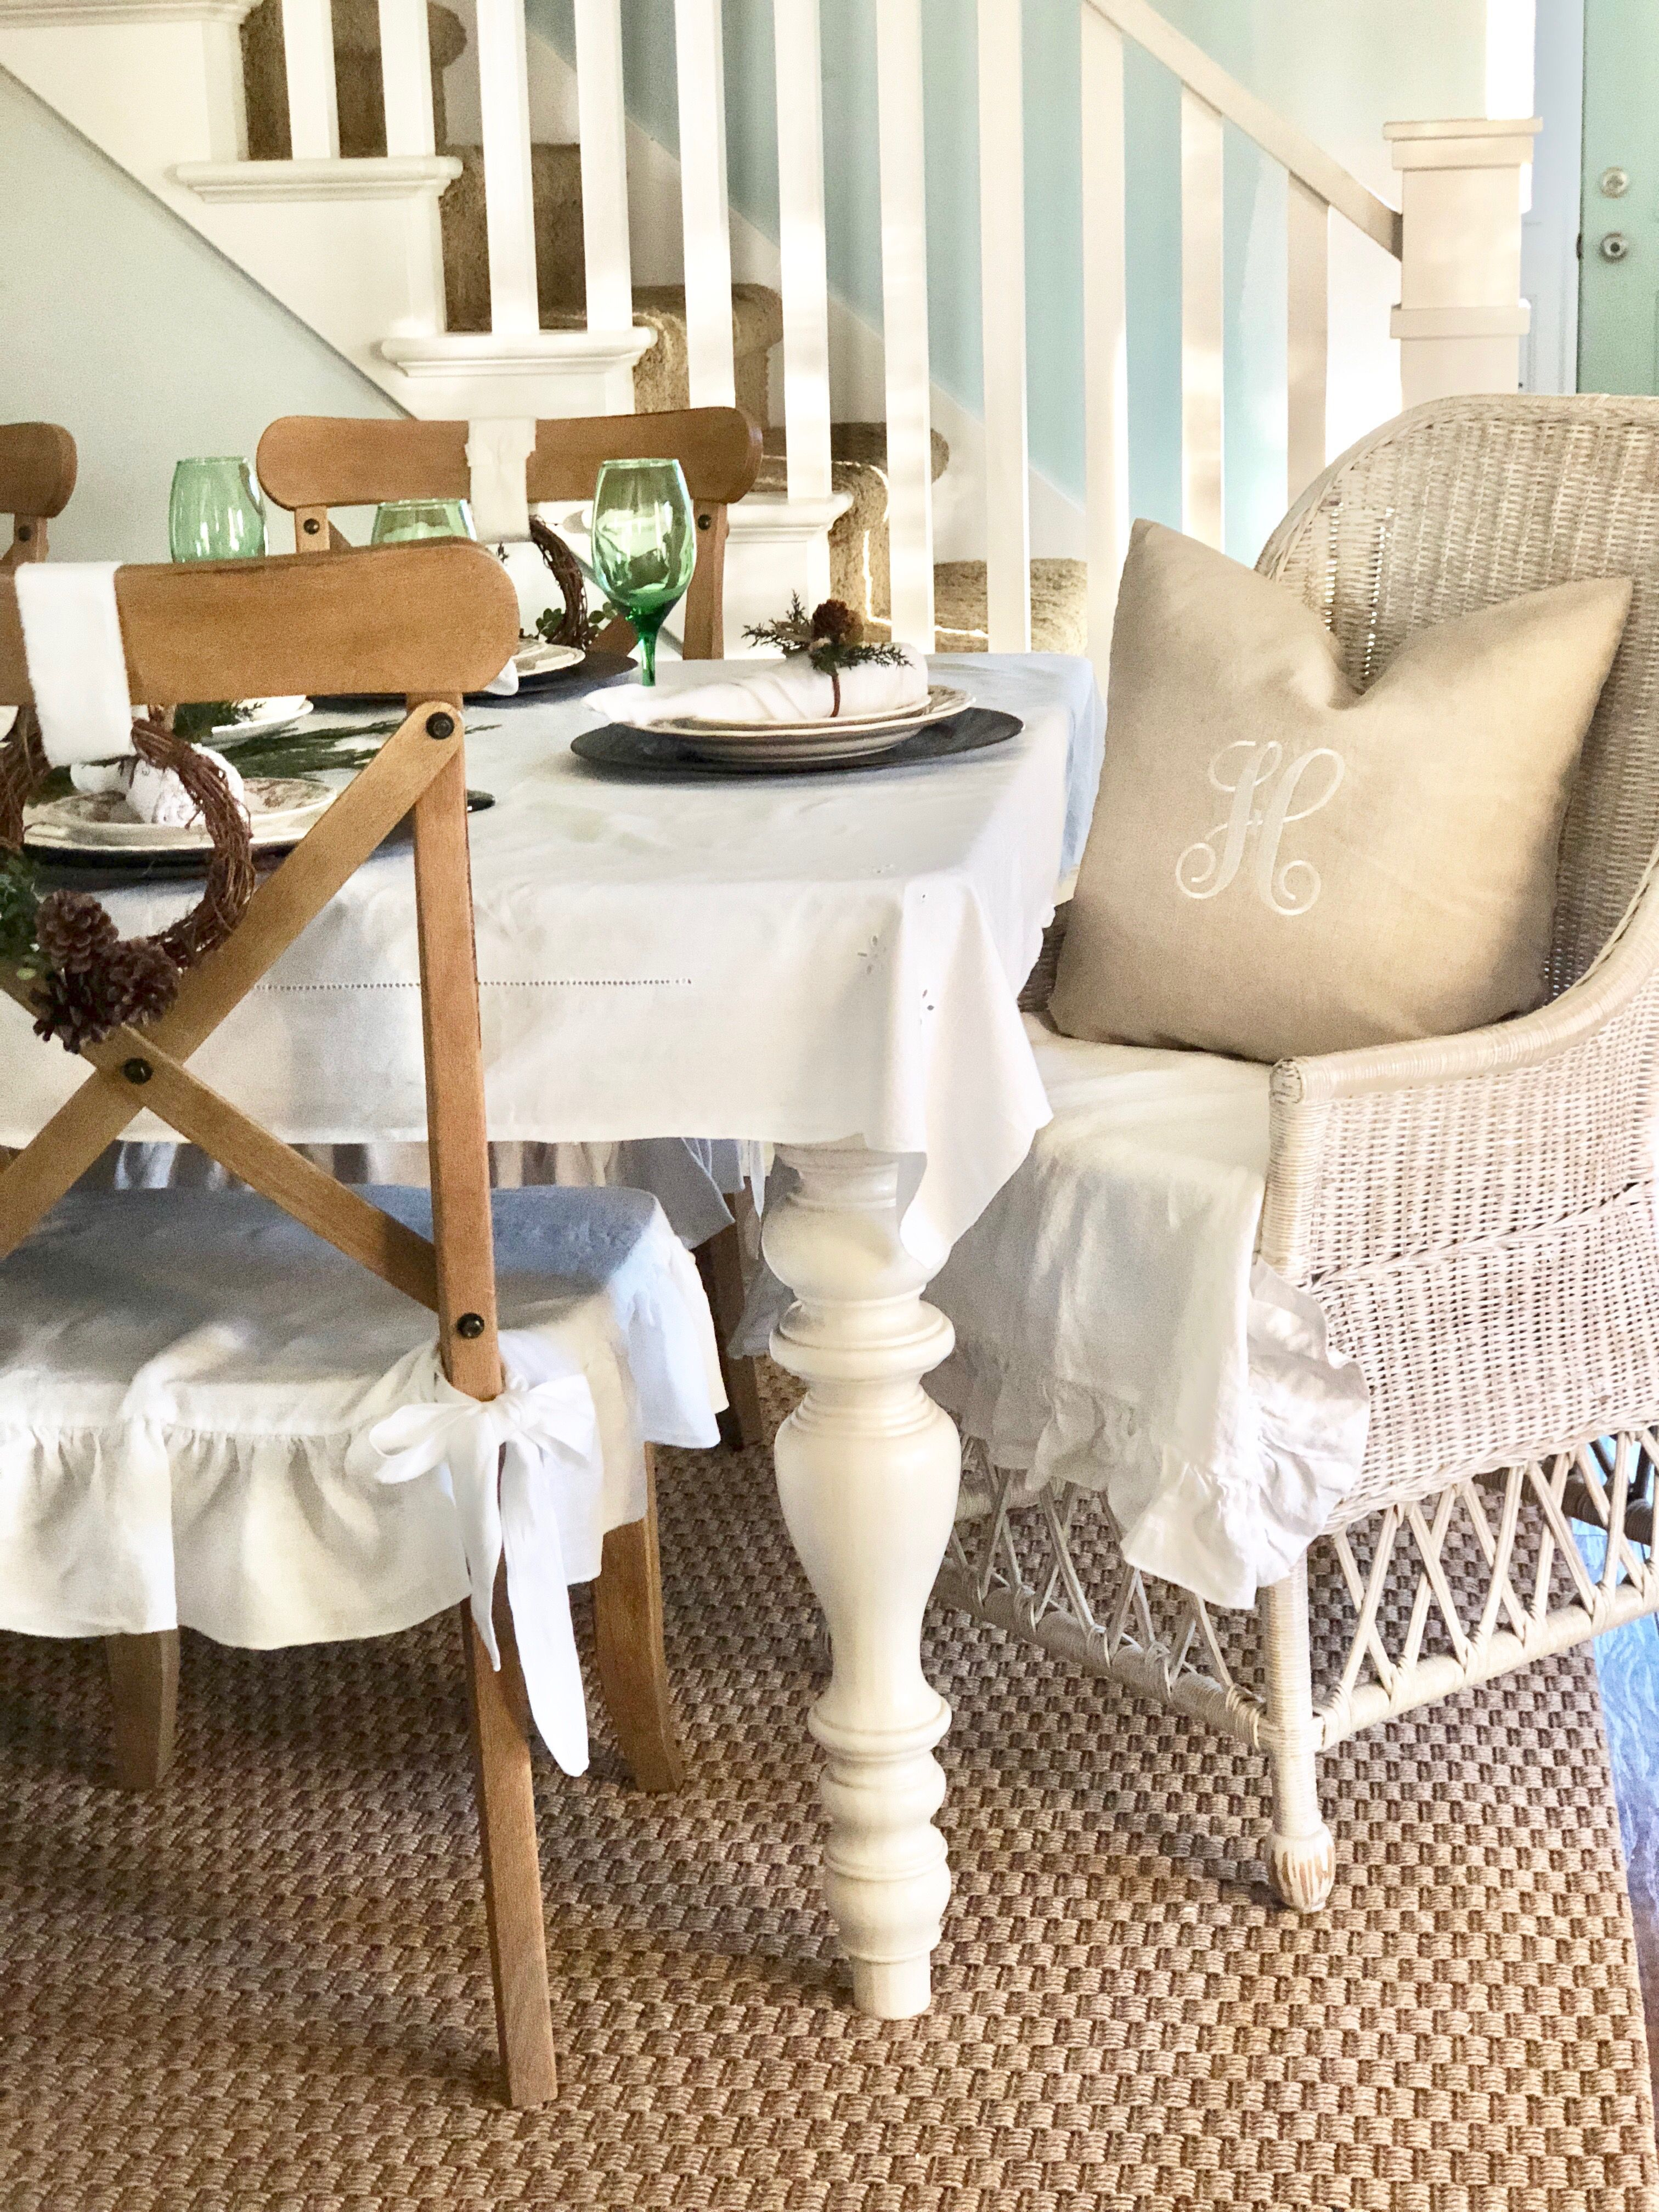 Christmas Chair Covers Pinterest Kmart Table And Chairs Outdoor Linen Cover Regular Dining Farmhouse Decor Oscar French Slip Monogramming Services Slipcovers